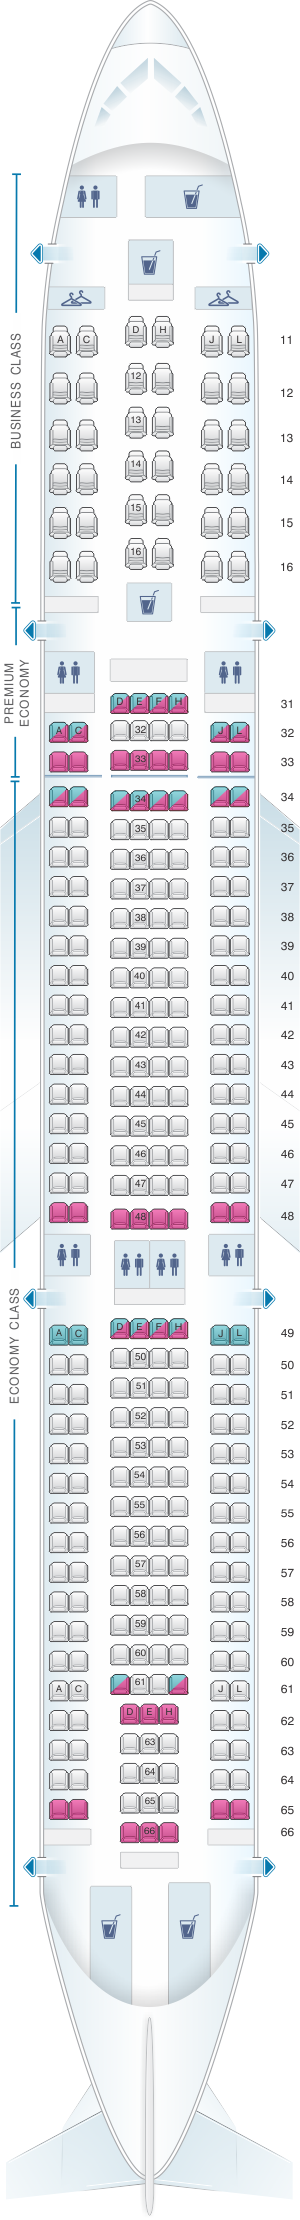 Seat map for Air China Airbus A330 300 (311PAX)